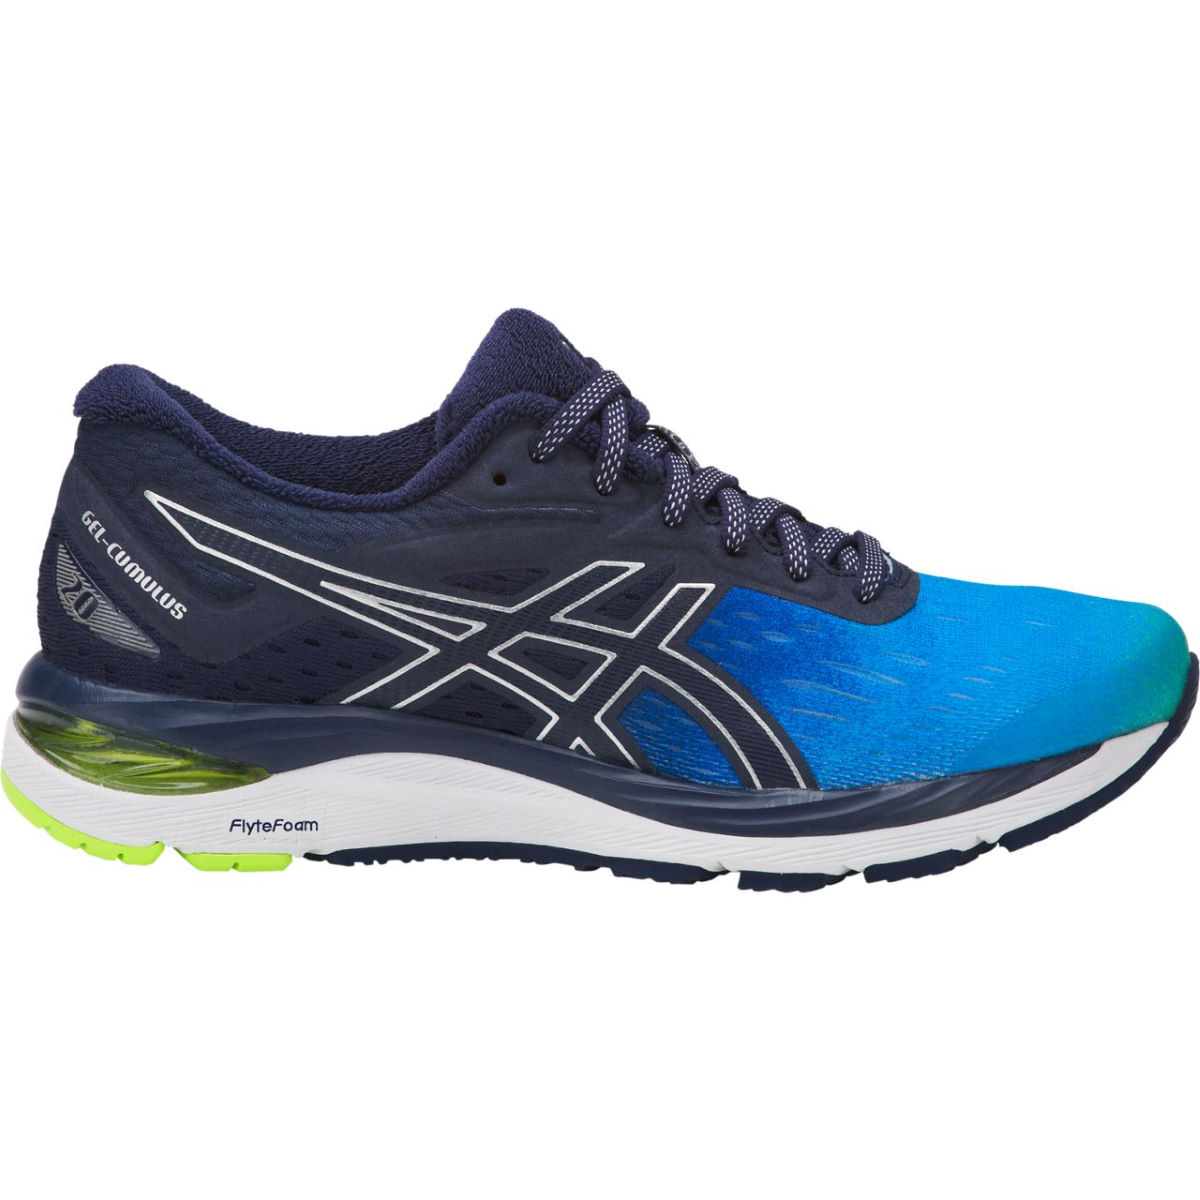 Asics Women's Gel-Cumulus 20 SP Shoes - Zapatillas de running